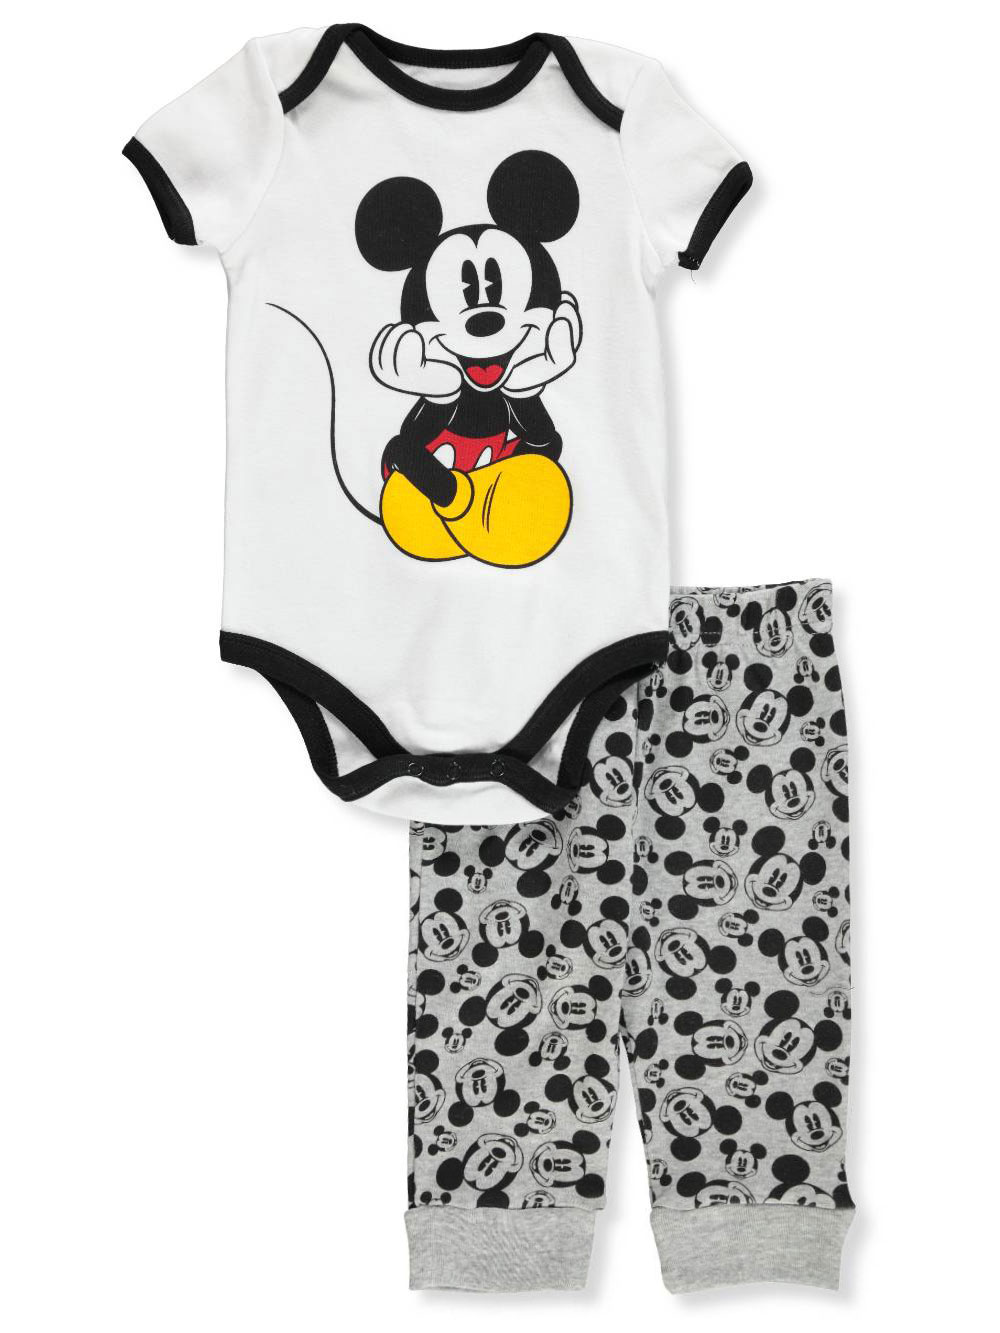 2cc8577c55a Disney Mickey Mouse Baby Boys' 2-Piece Pants Set Outfit